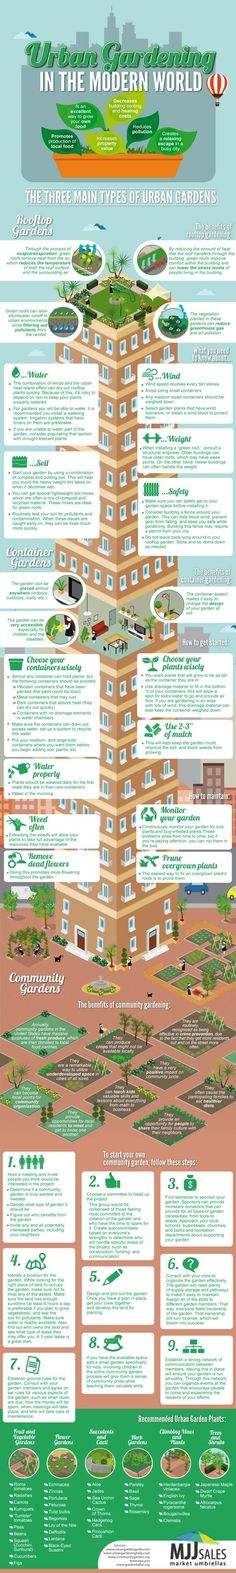 urban gardening what you need know grow your own green city tips tipsographic